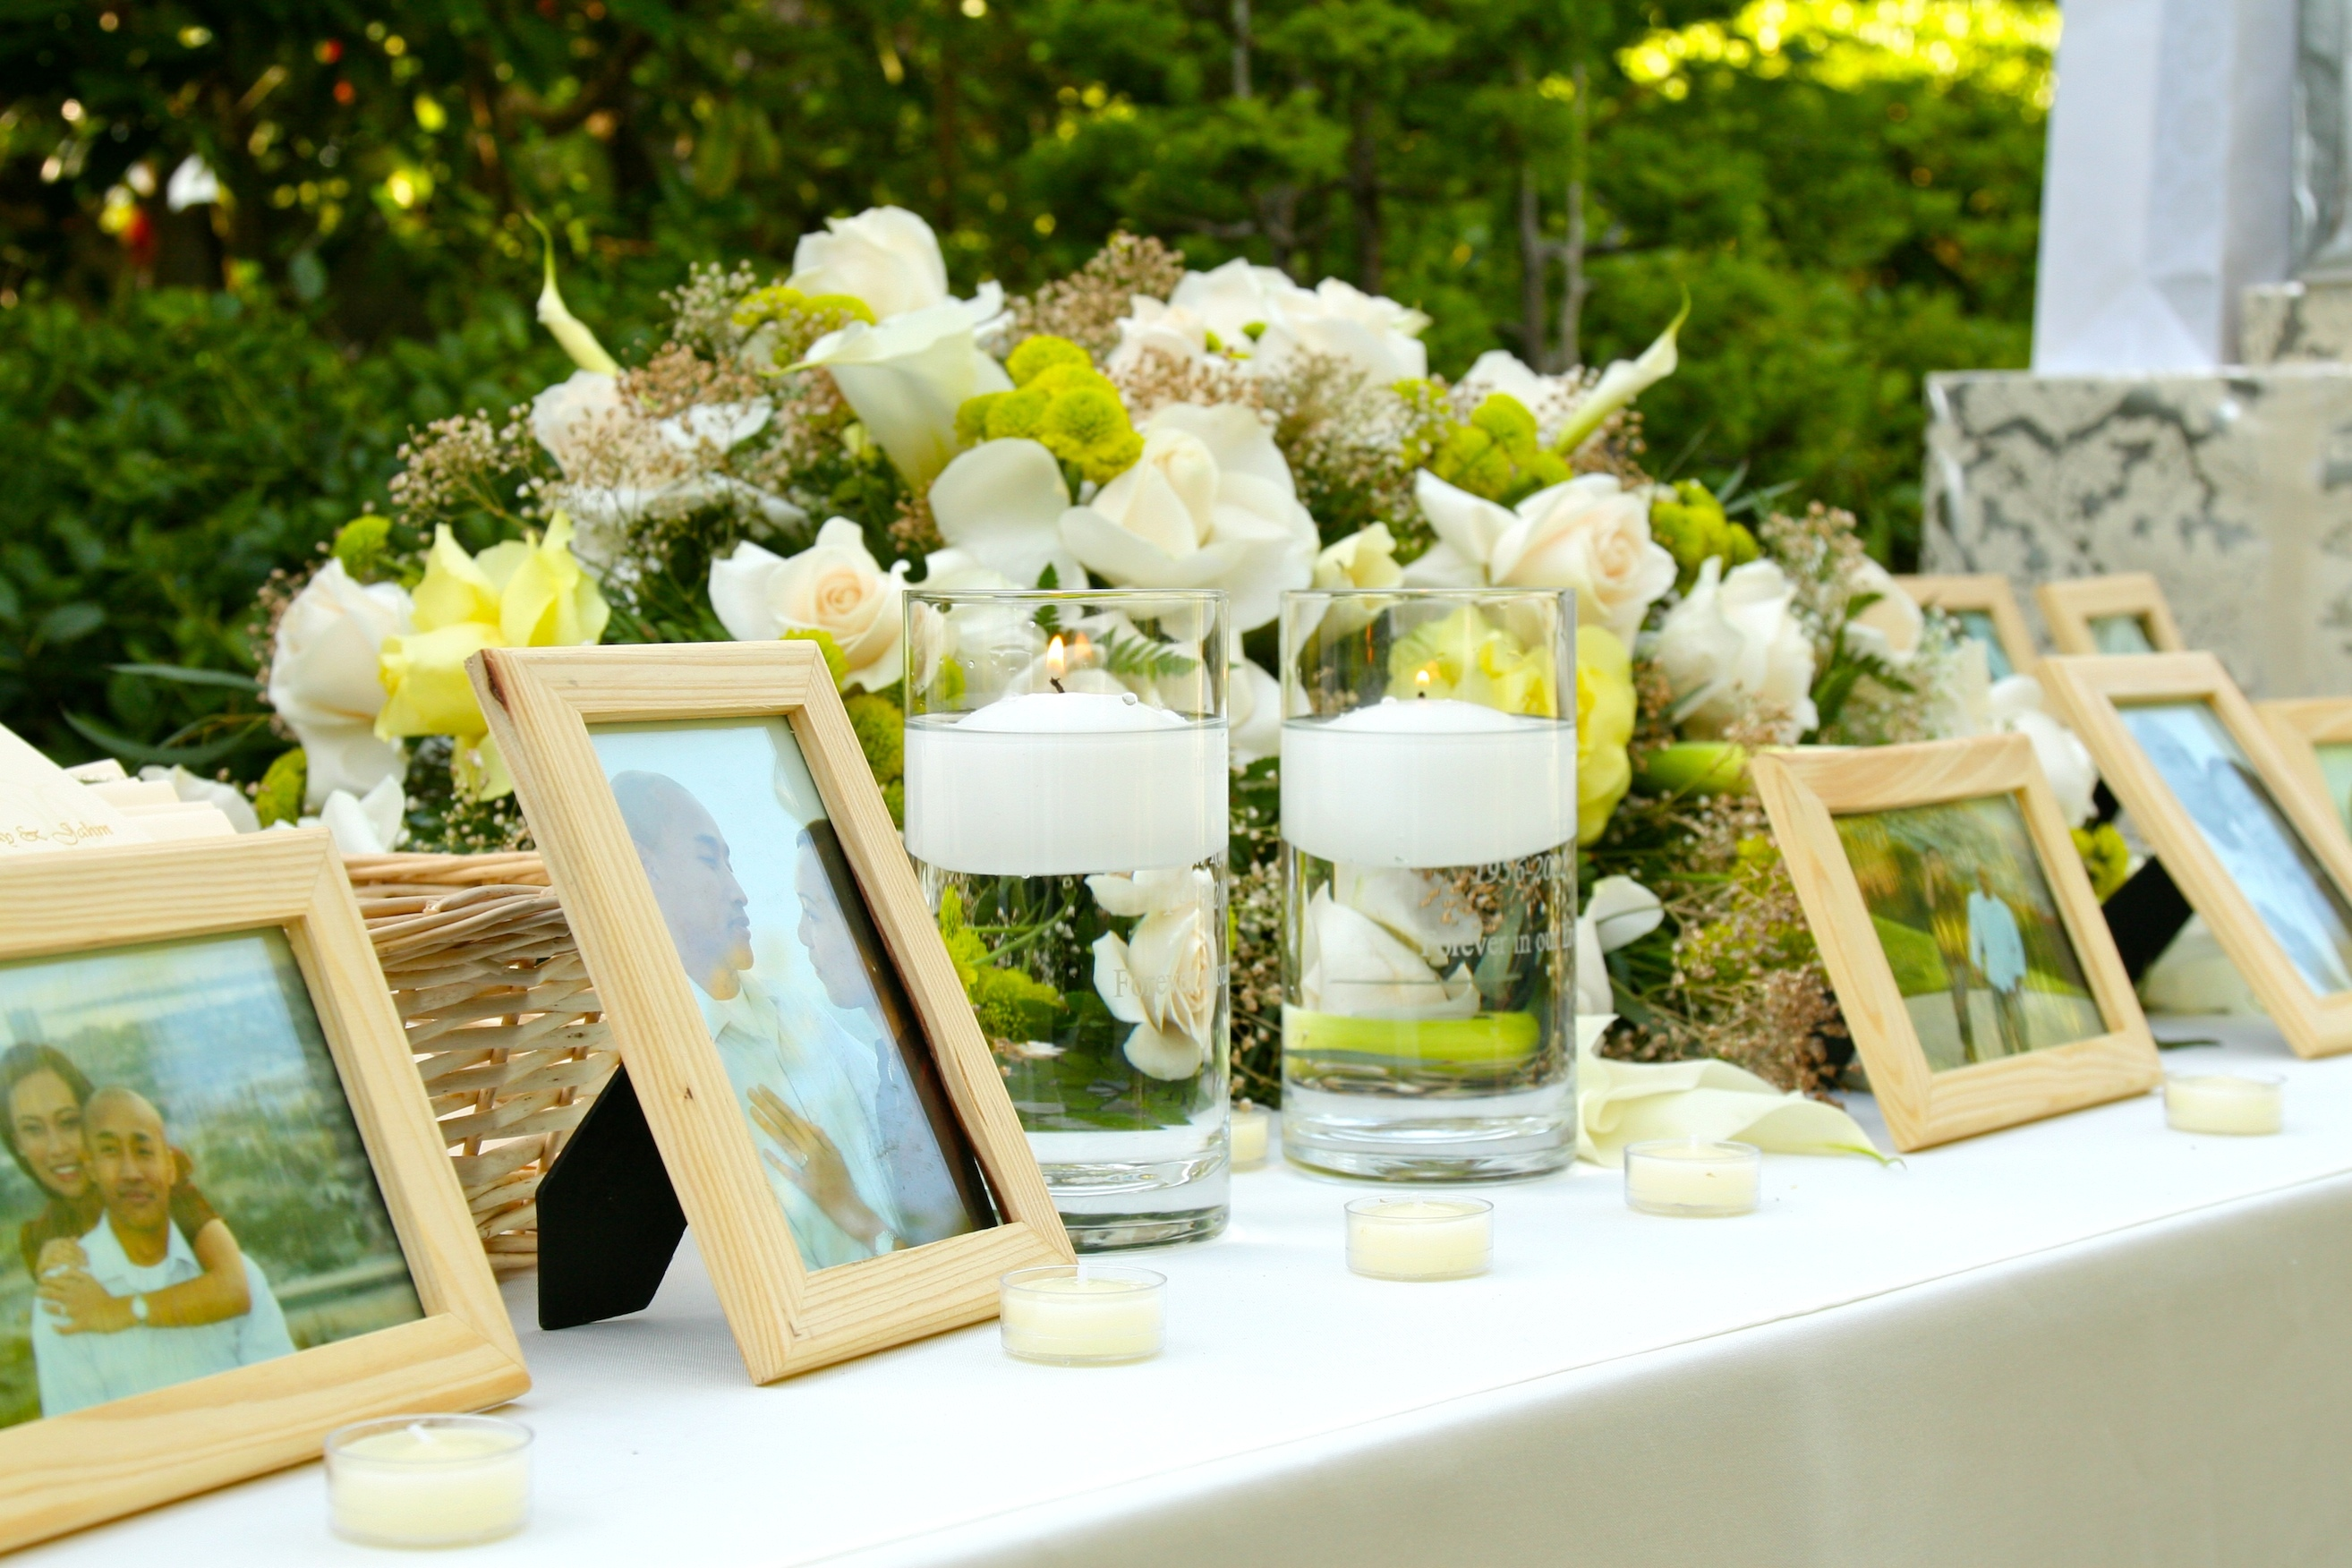 Ceremony, Flowers & Decor, Candles, Memorial